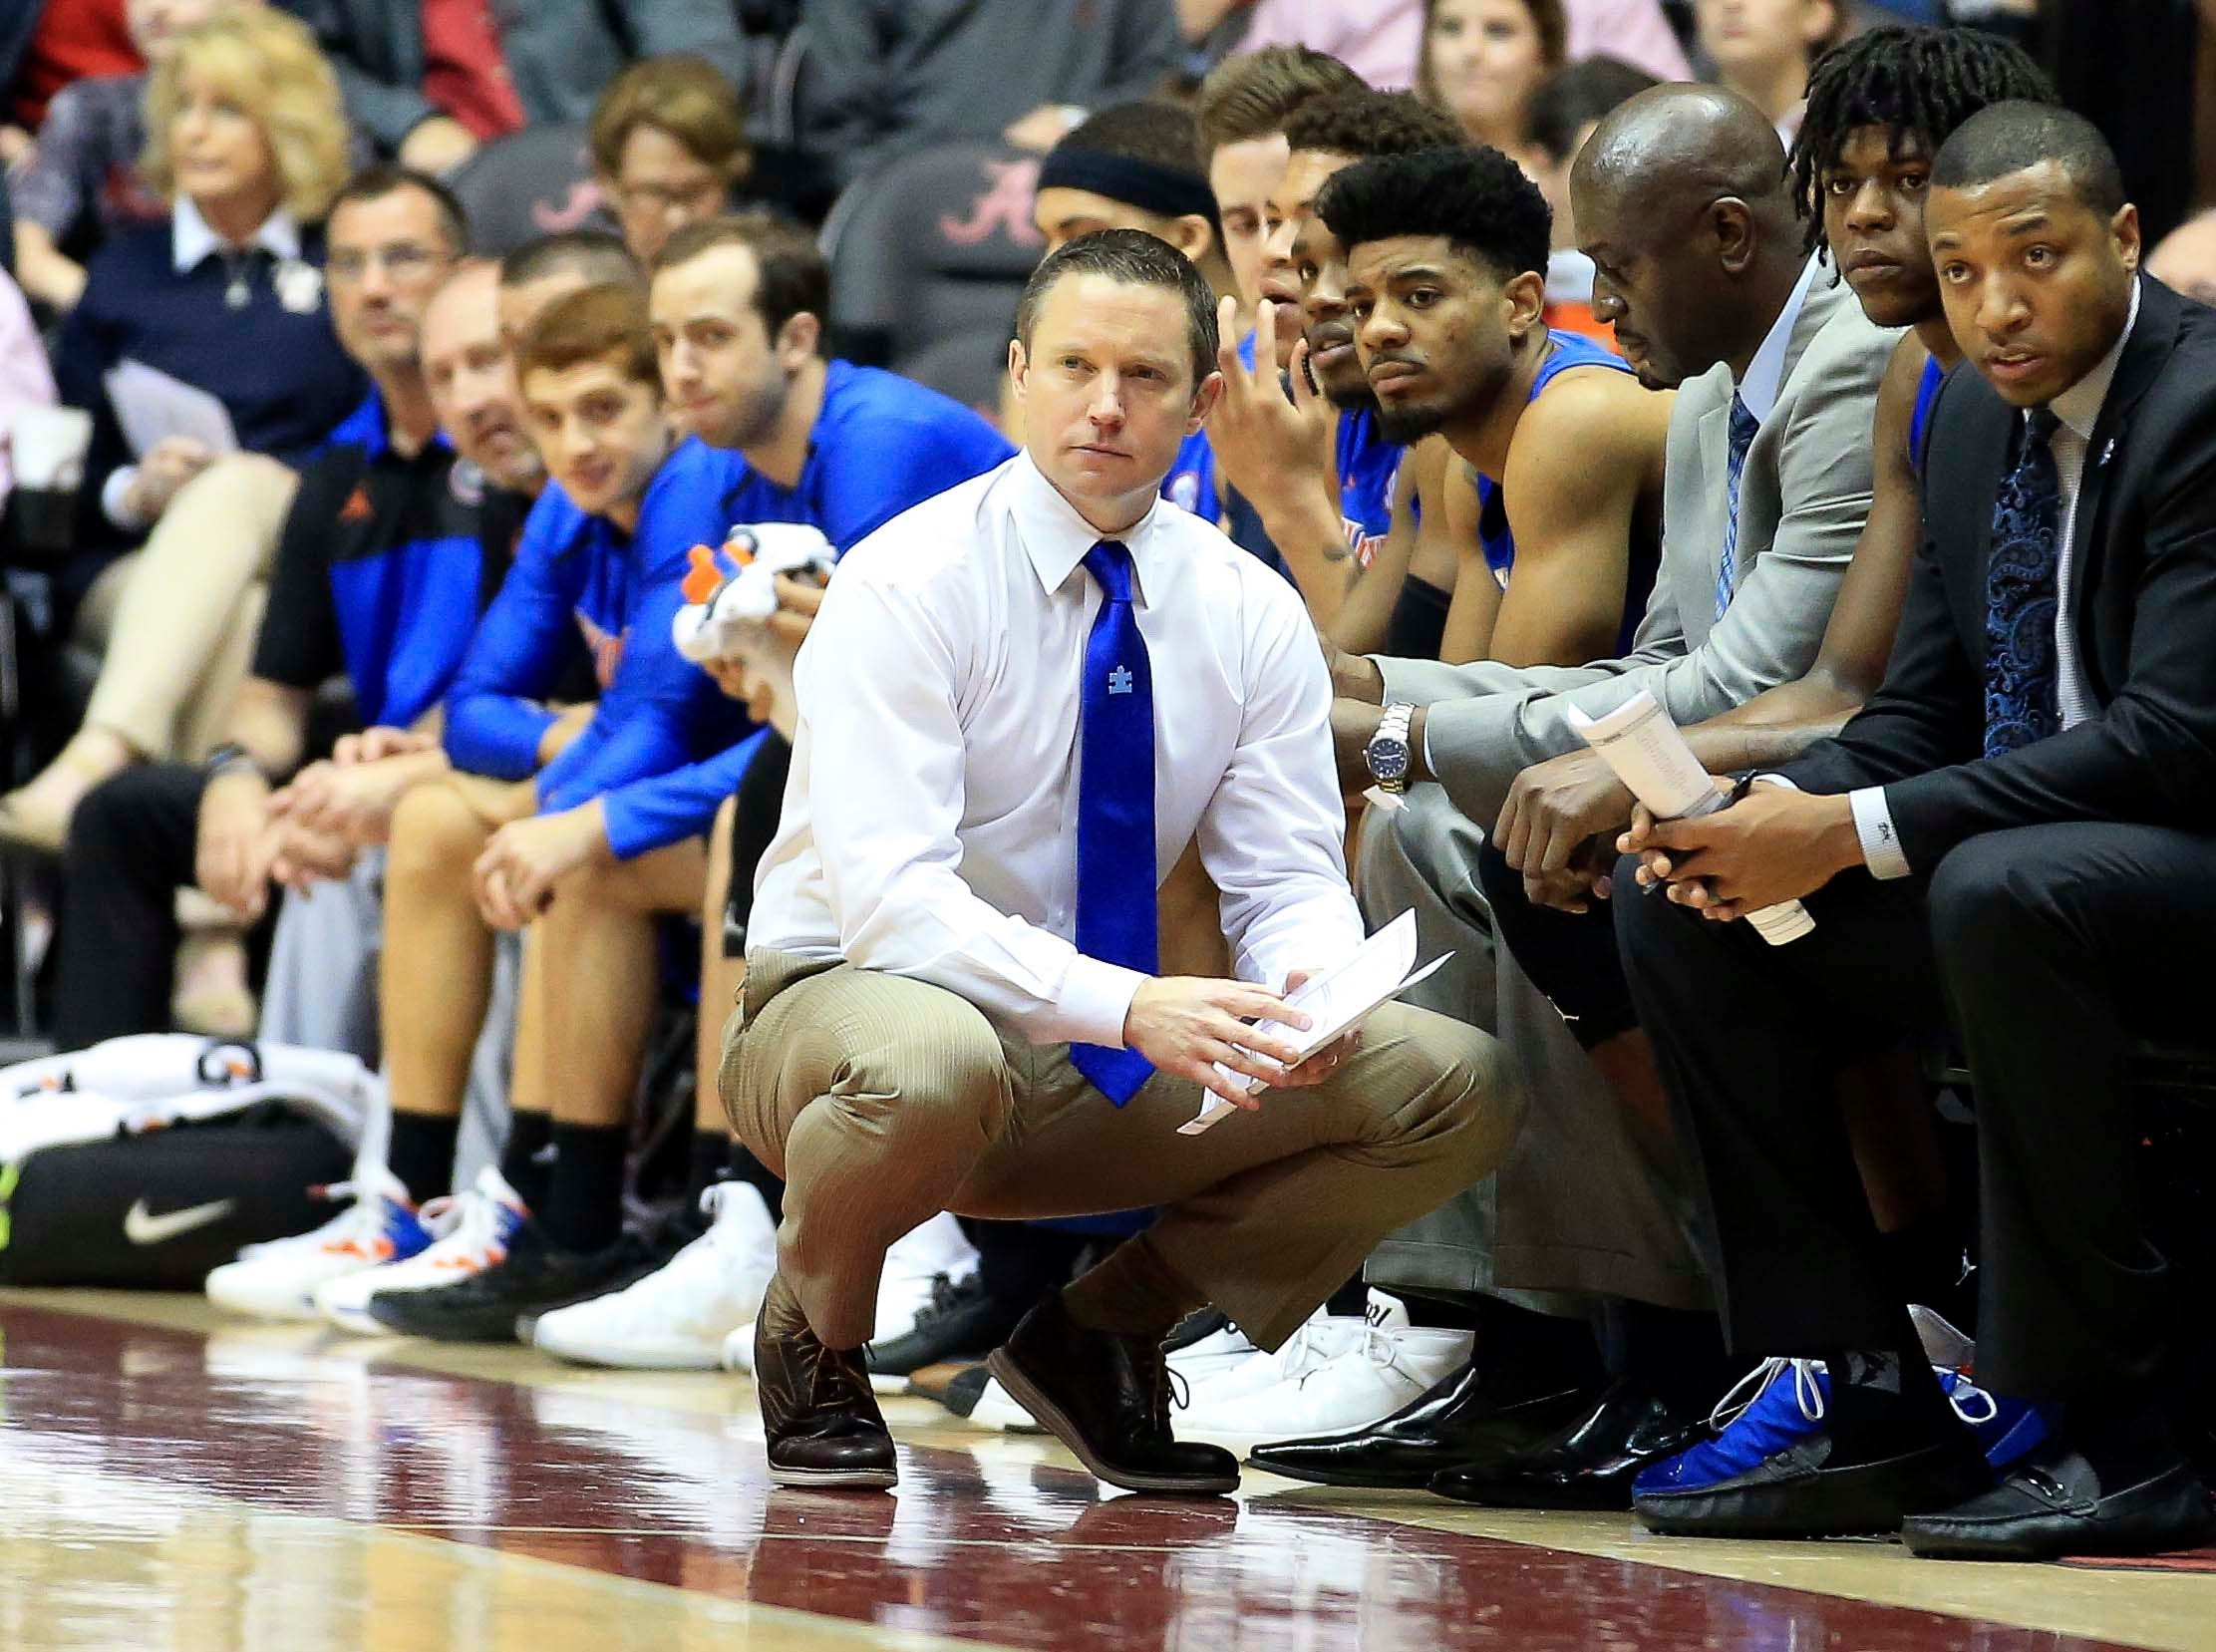 Feb 16, 2019; Tuscaloosa, AL, USA; Florida Gators head coach Mike White during the first half against Alabama Crimson Tide at Coleman Coliseum. Mandatory Credit: Marvin Gentry-USA TODAY Sports